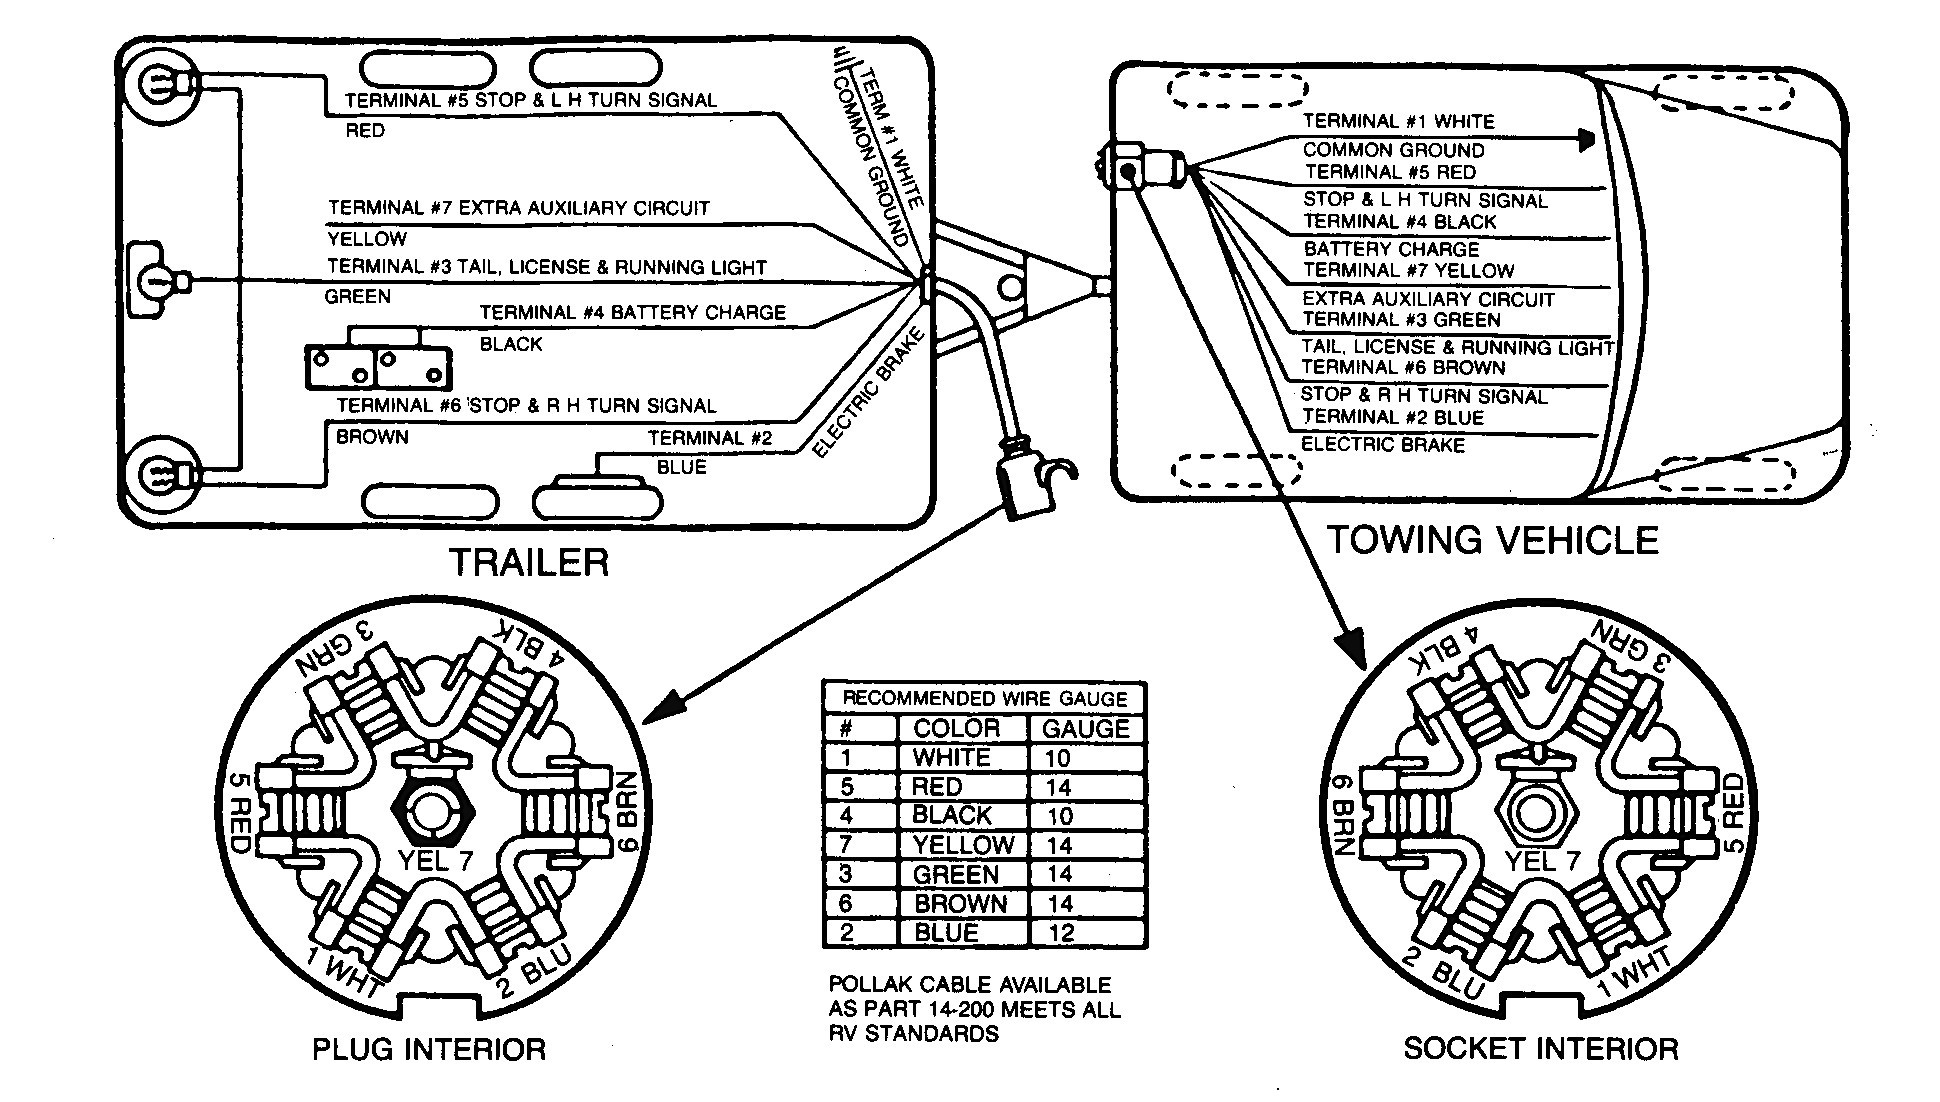 7 Way Trailer Wiring Diagram For Dummies | Wiring Library - Big Tex Trailer Wiring Diagram